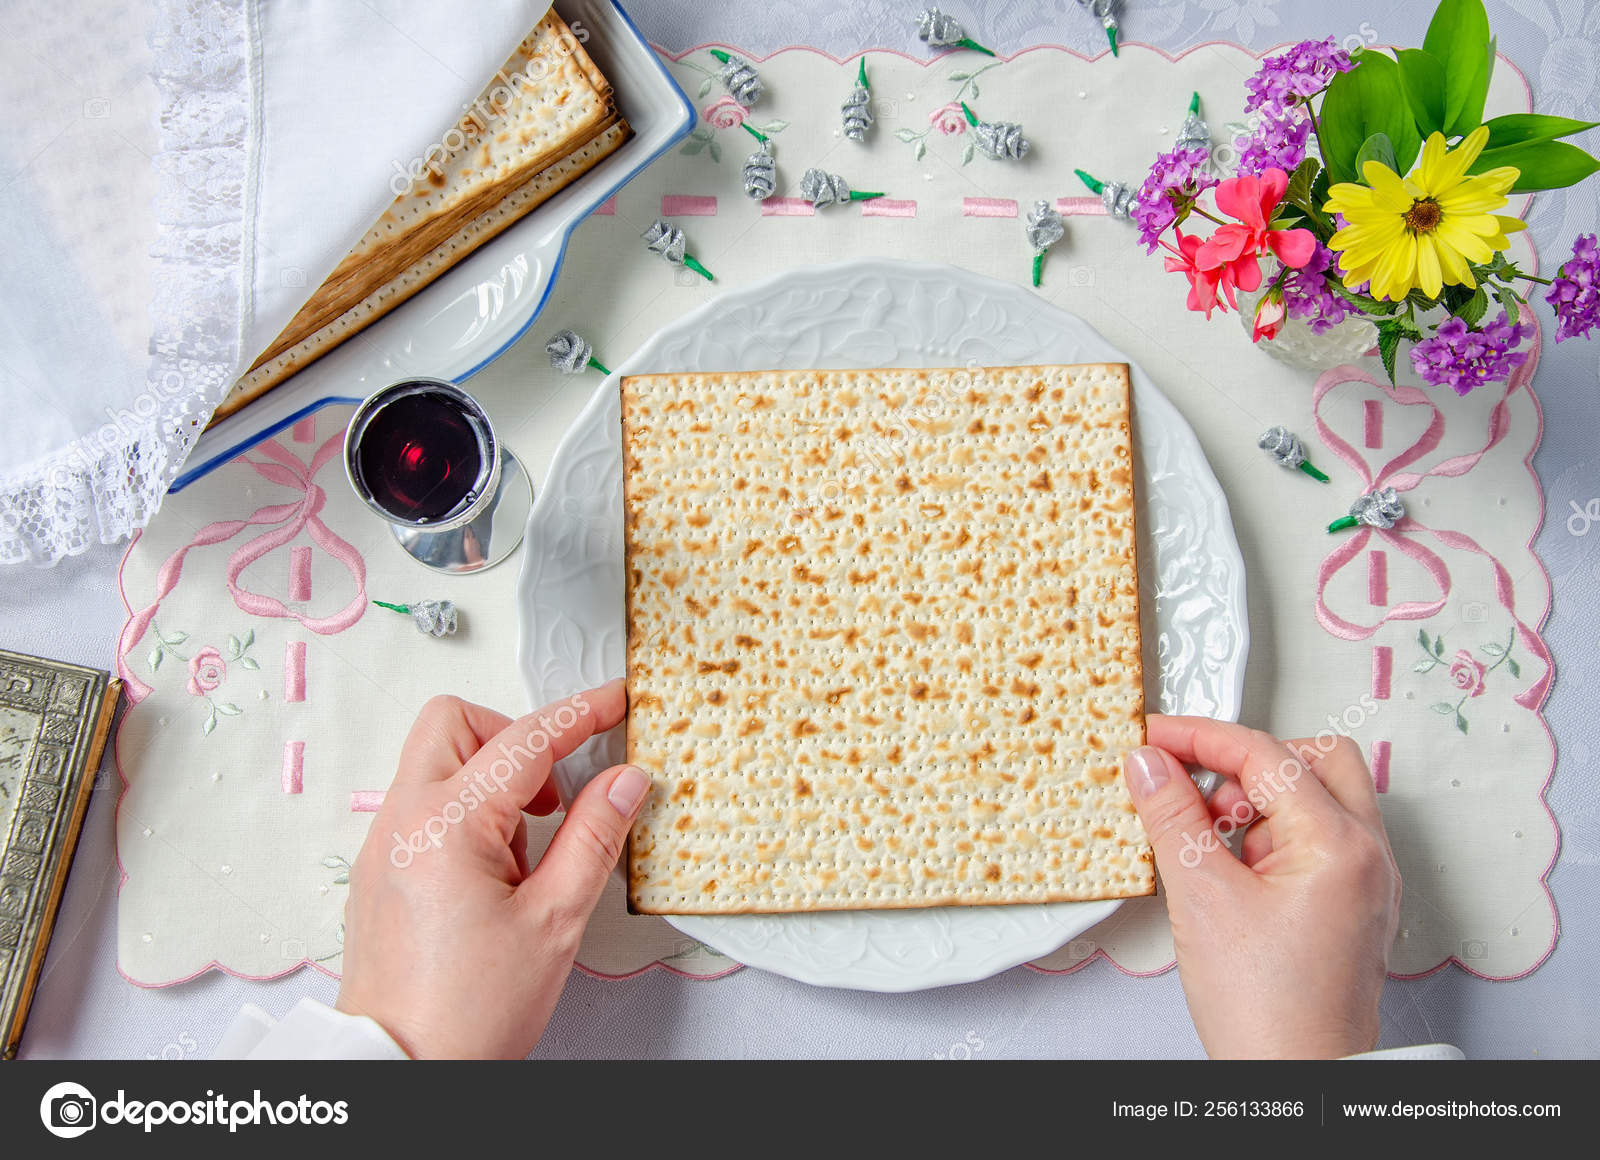 Hands had just pulled the matza out of the pack and put it on a white plate. The table is covered with a holiday tablecloth.